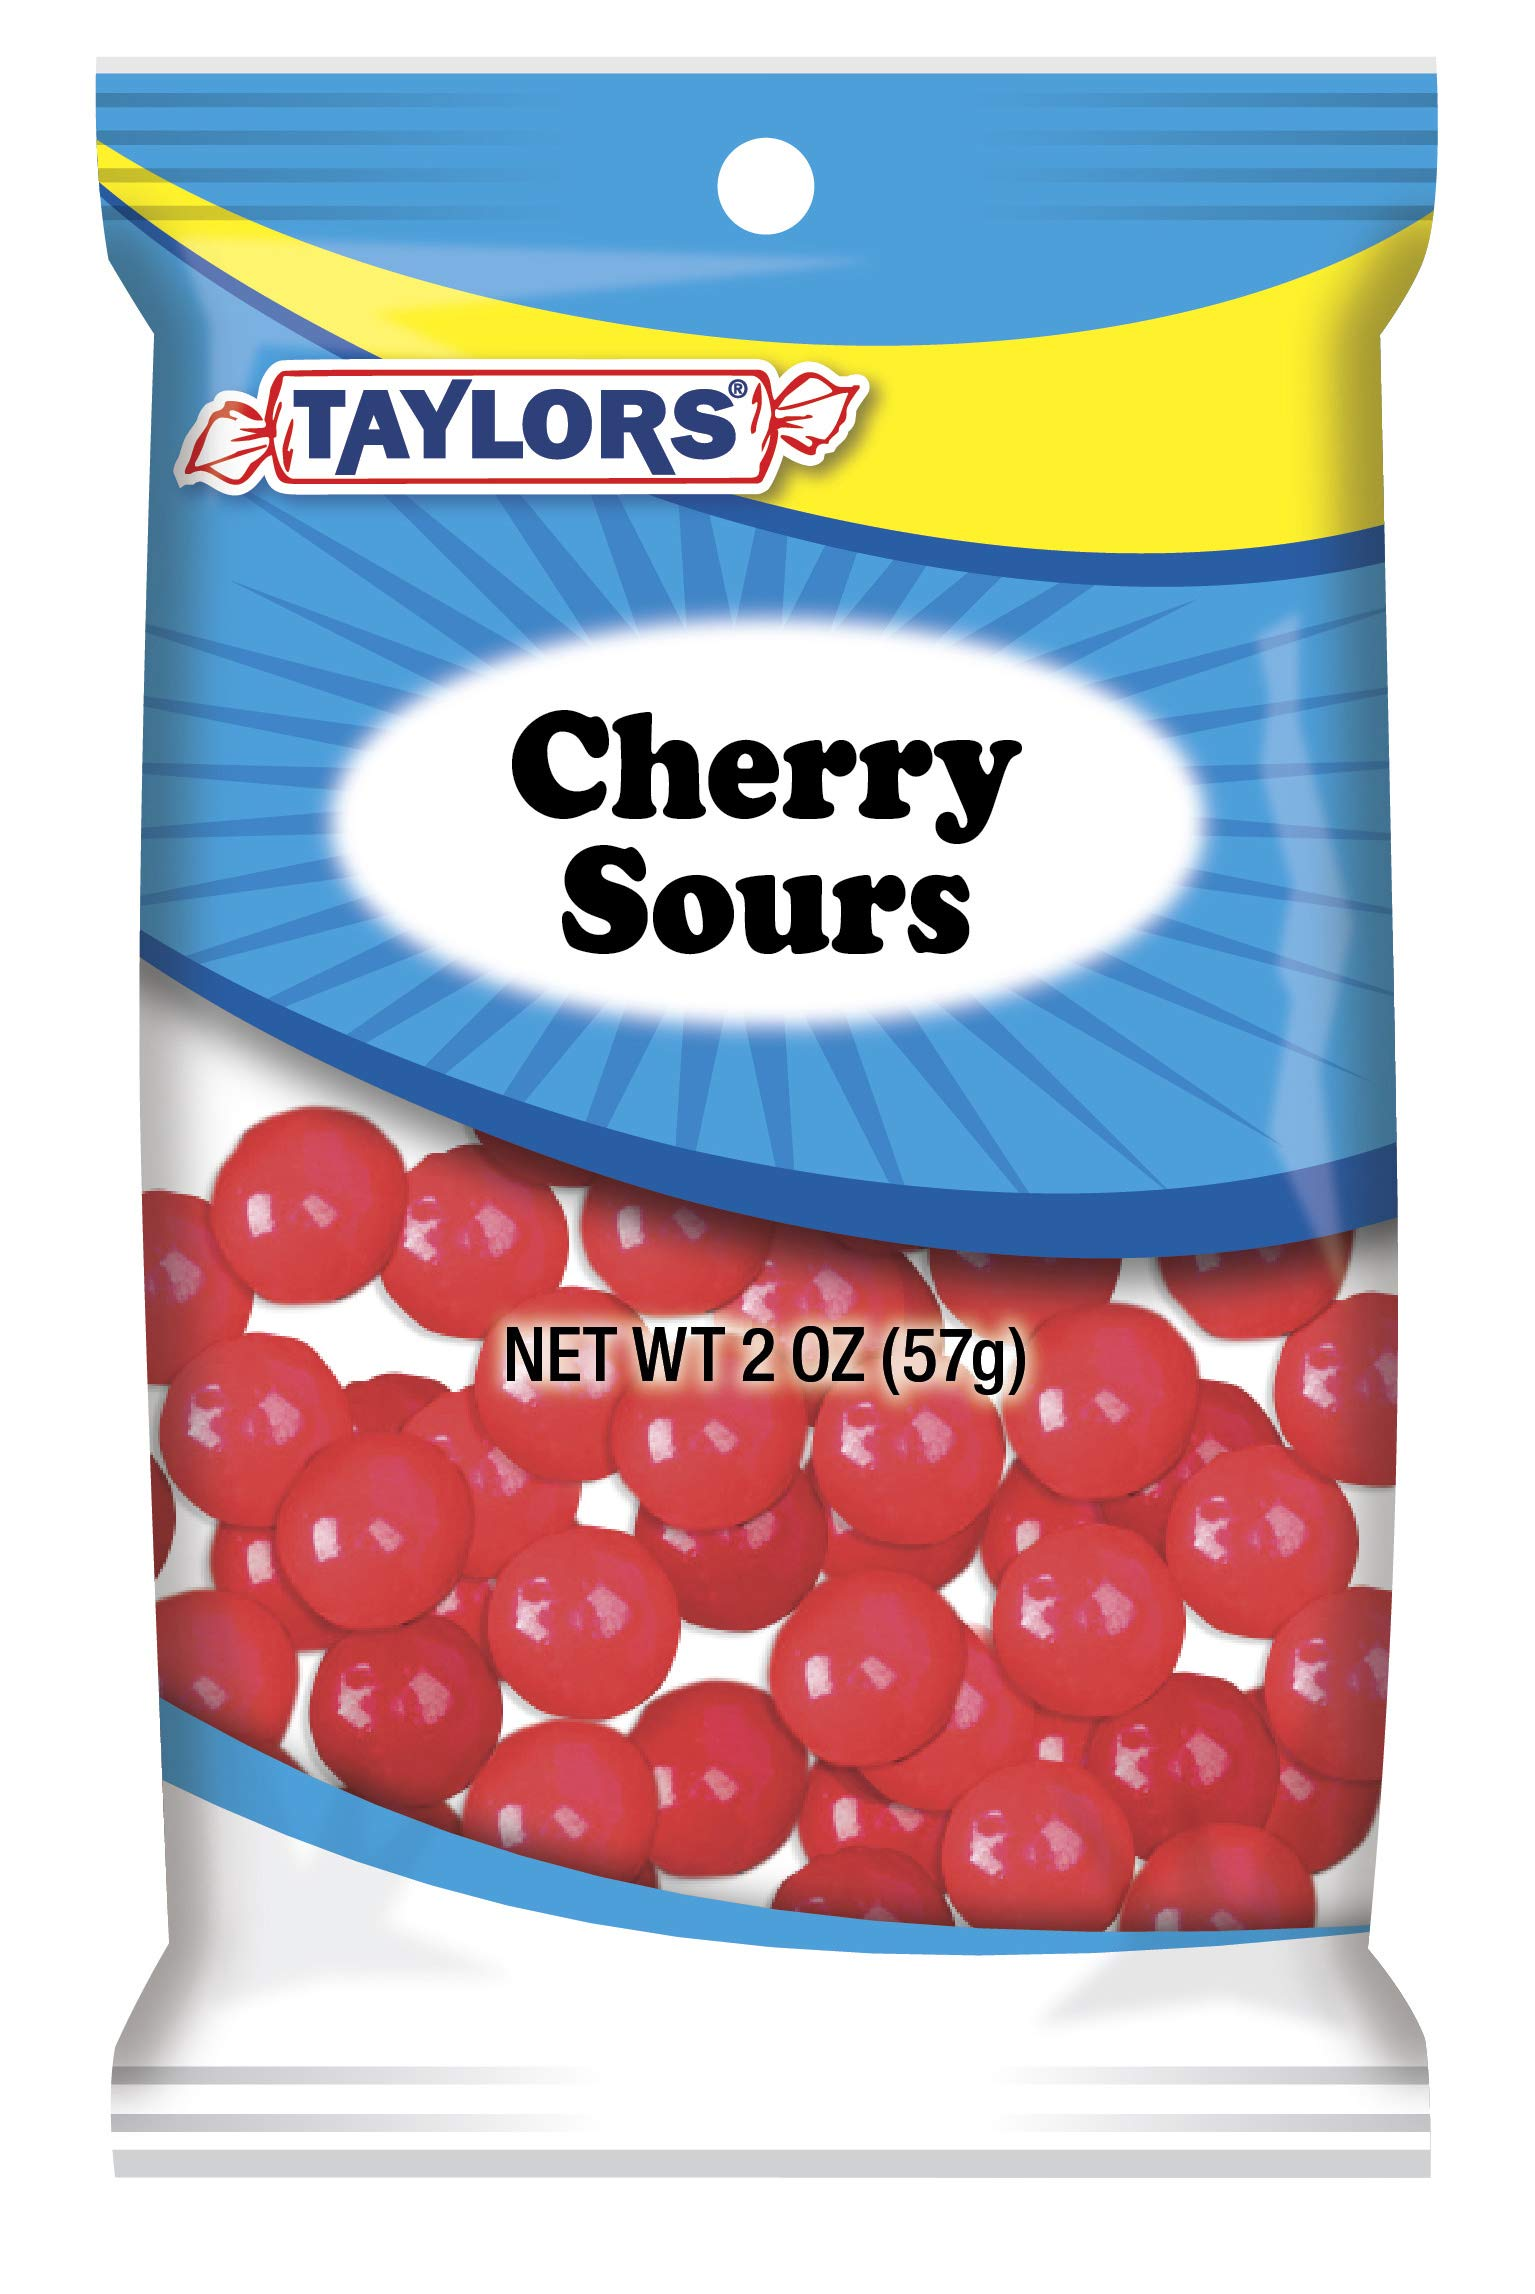 Taylors Candy 2 oz Cherry Sours Candies, 24 Count (Pack of 1) by TylrdsCn (Image #1)